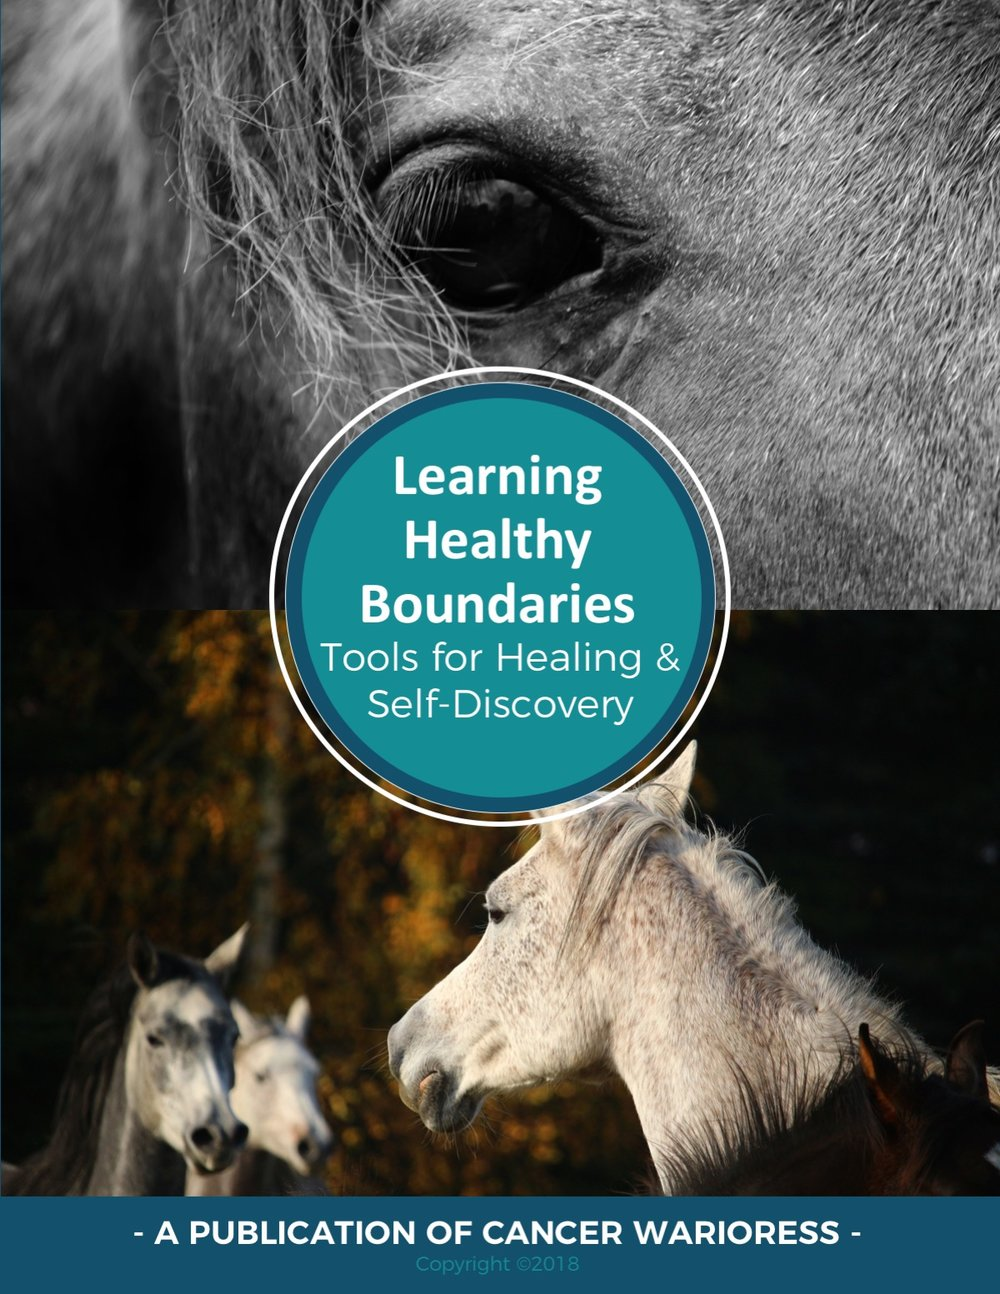 Learning Healthy Boundaries eBook - Cancer Warrioress - Copyright 2018.jpg